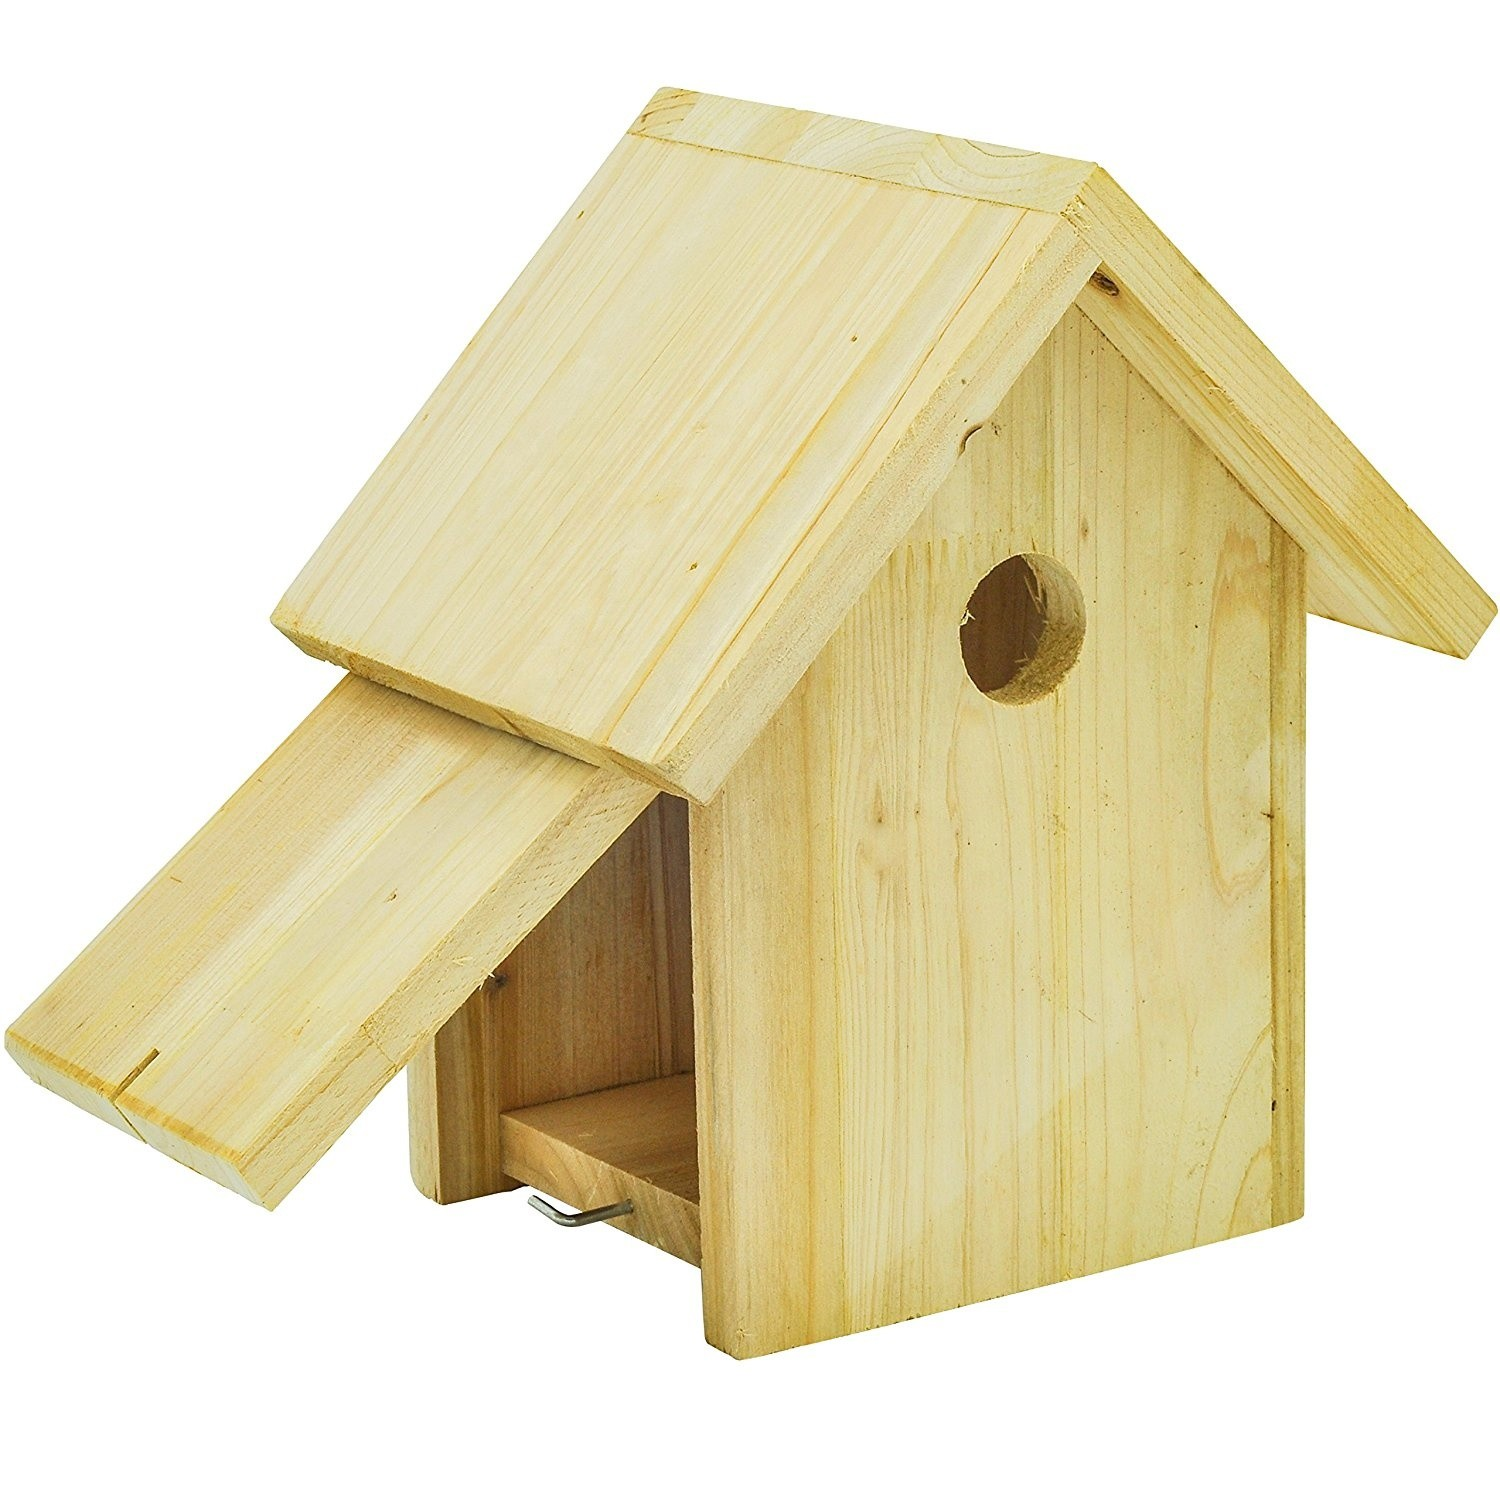 Antique design unfinished wooden bird house outdoor parrot cage garden decor 8.2 x 6.2 x 9.6 inches